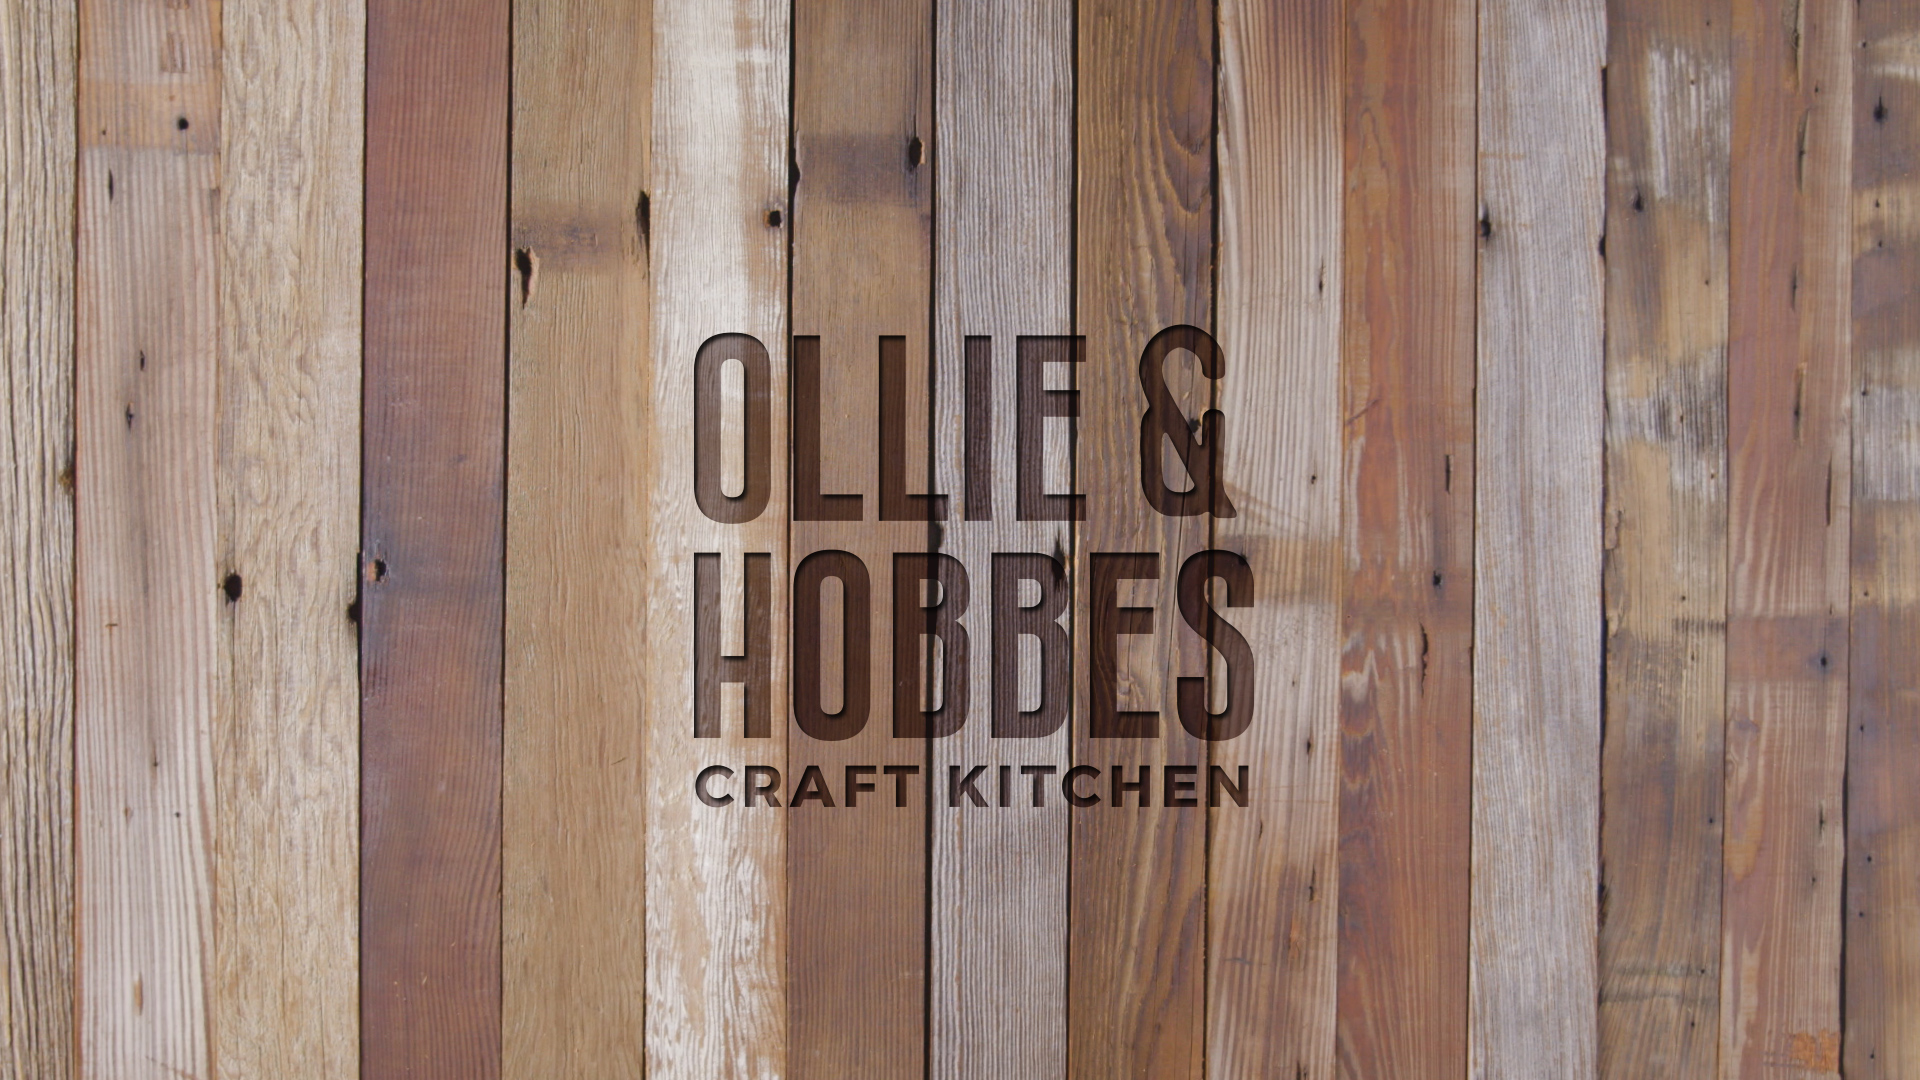 Ollie & Hobbes Craft Kitchen